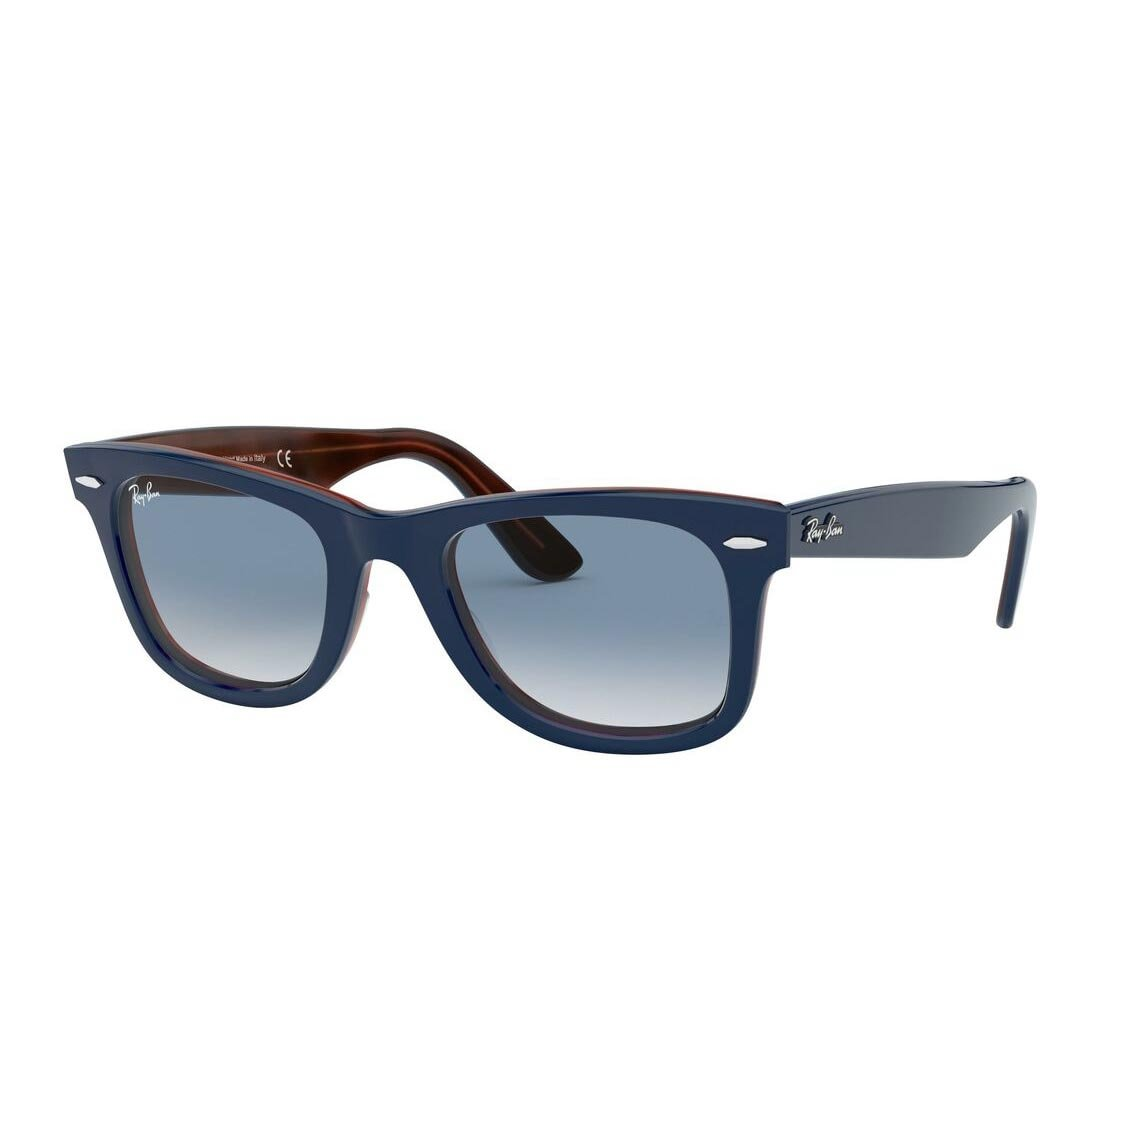 Ray-Ban Original Wayfarer Color Mix RB2140 12783F 5022